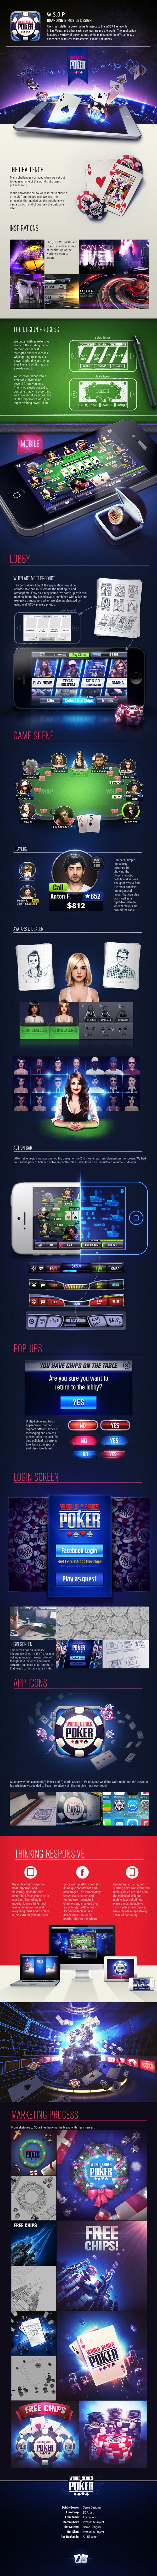 WSOP - The poker face-lift on Behance